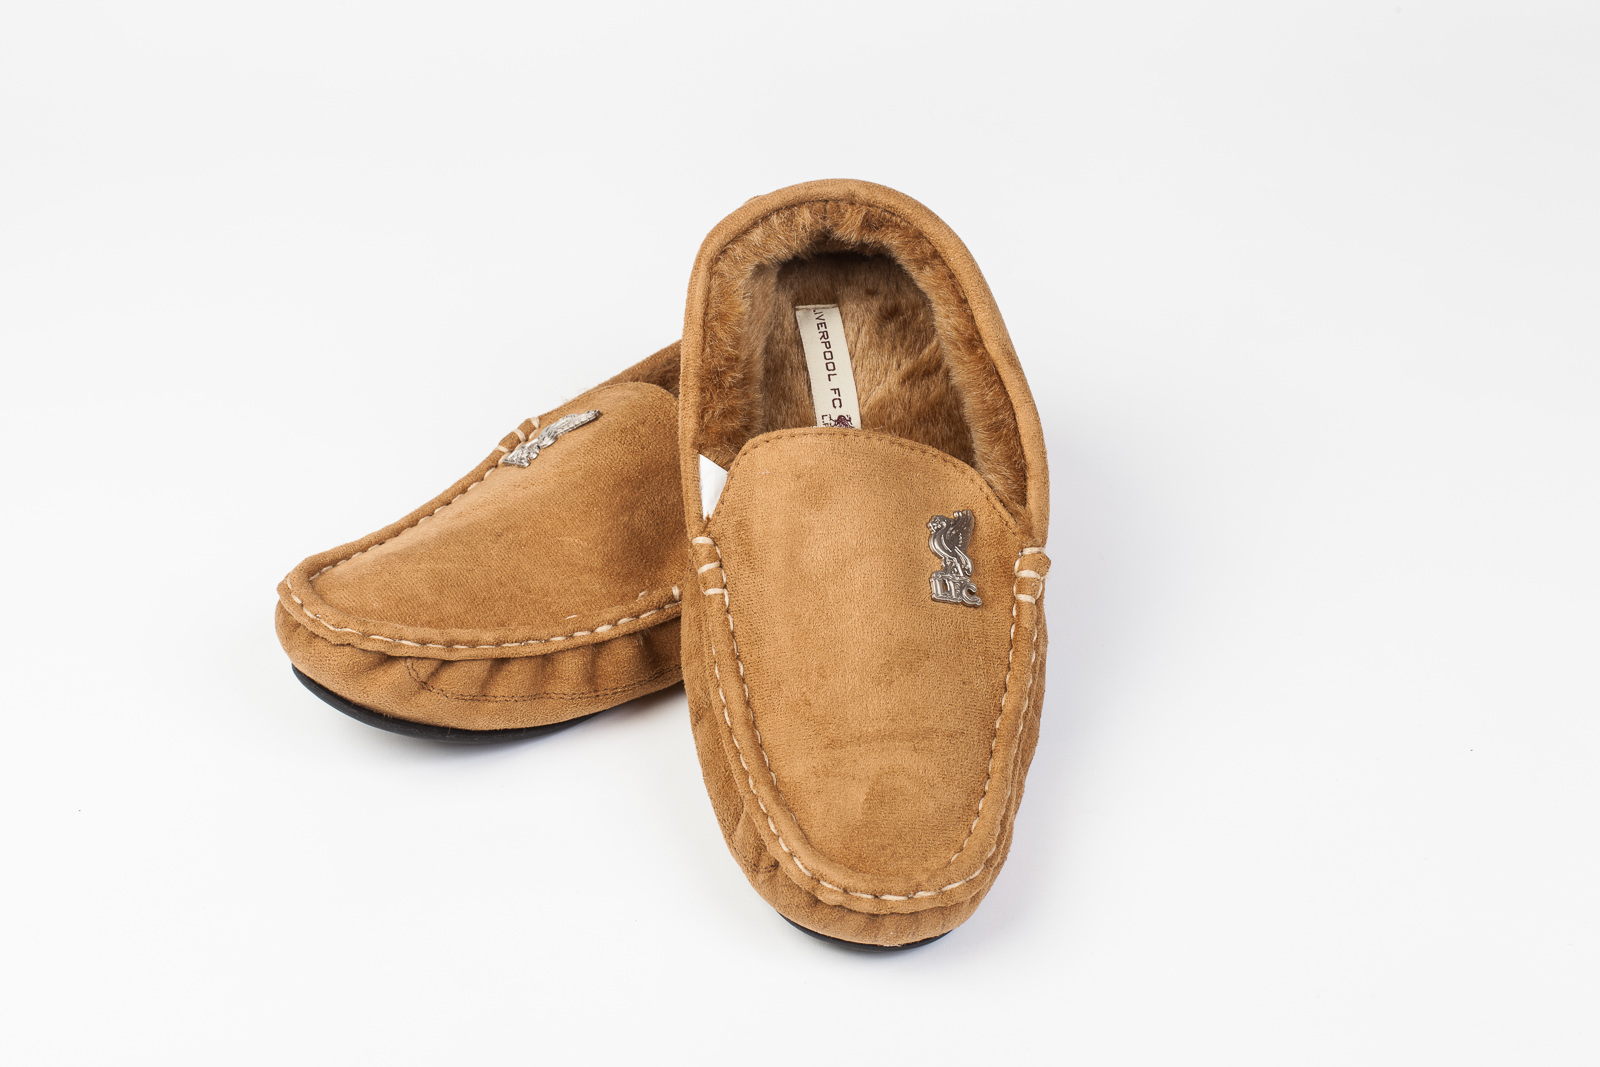 liverpool mens moccasin home casual winter suede slippers. Black Bedroom Furniture Sets. Home Design Ideas